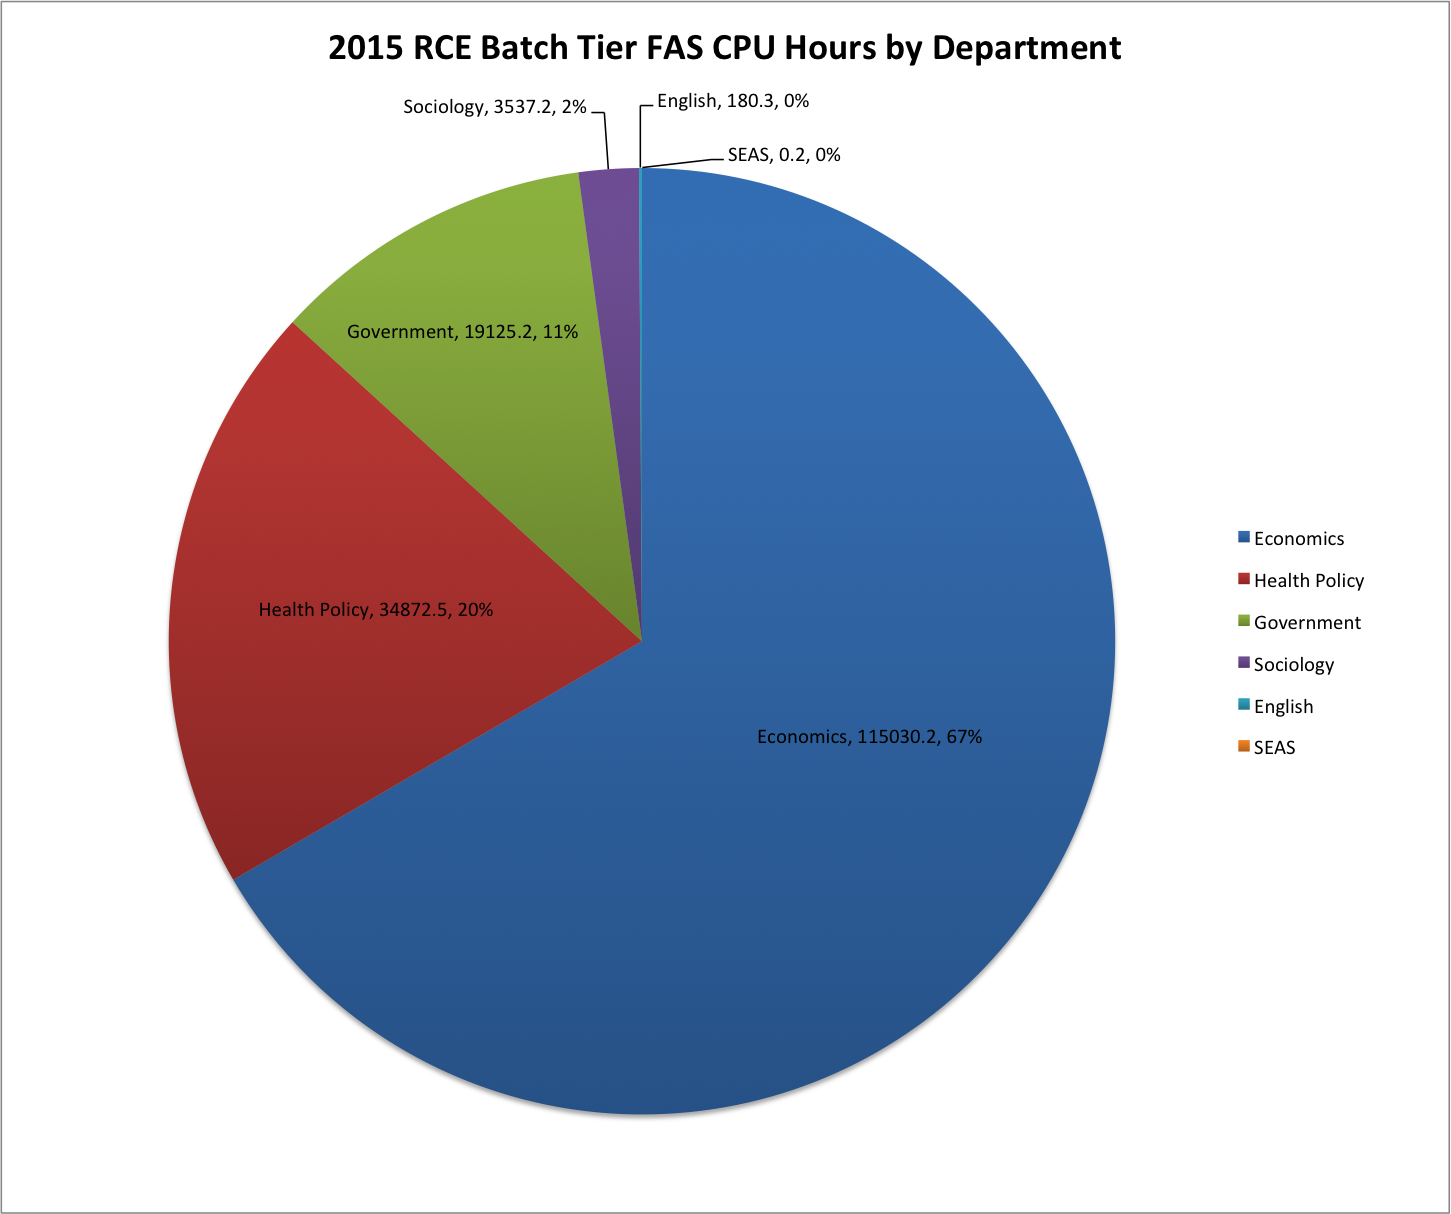 2015 RCE Batch Tier FAS CPU Hours by Department